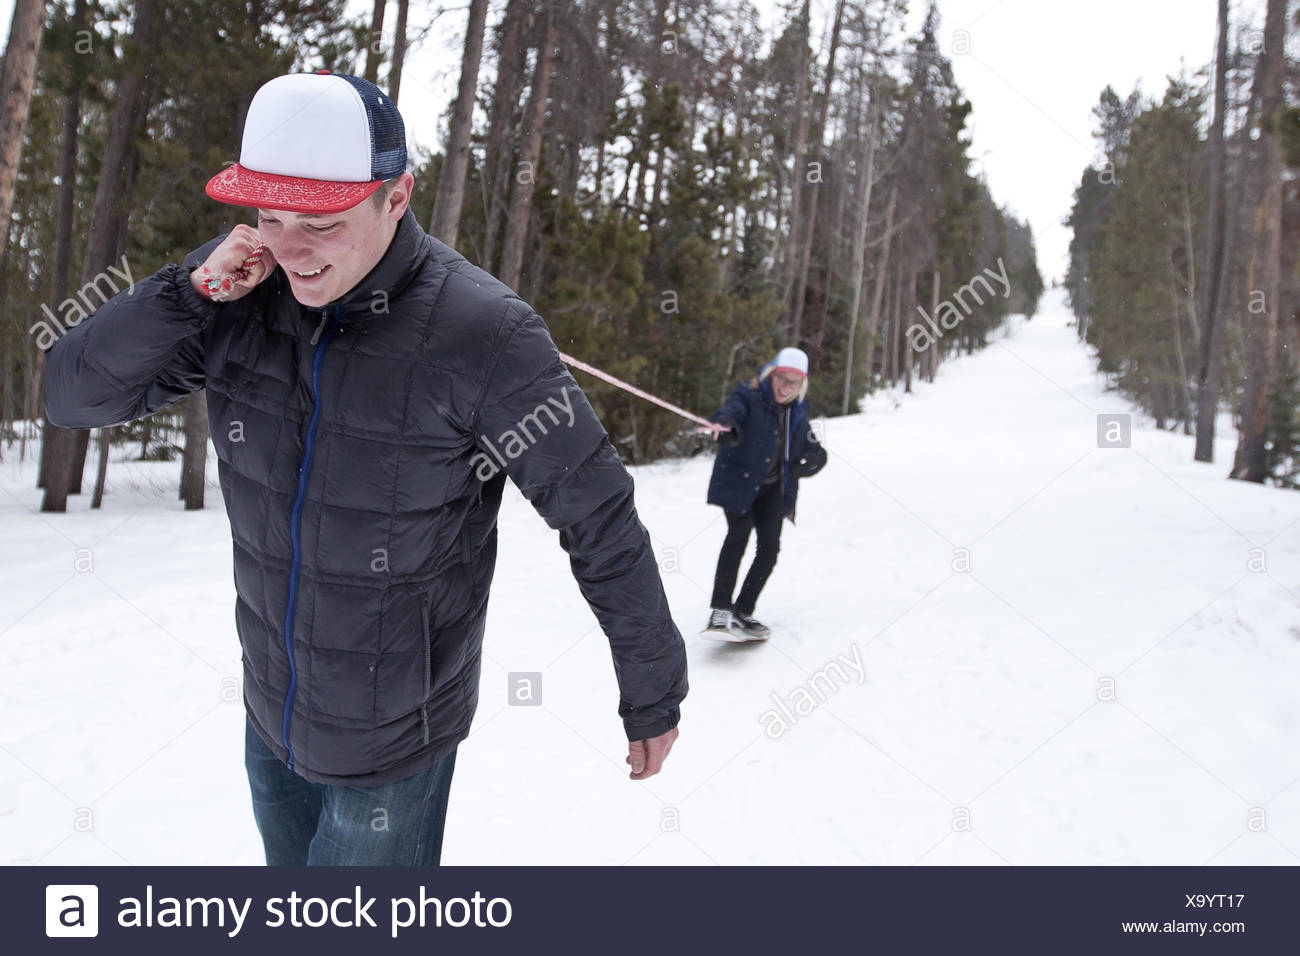 Young man pulling man on snowboard with rope - Stock Image